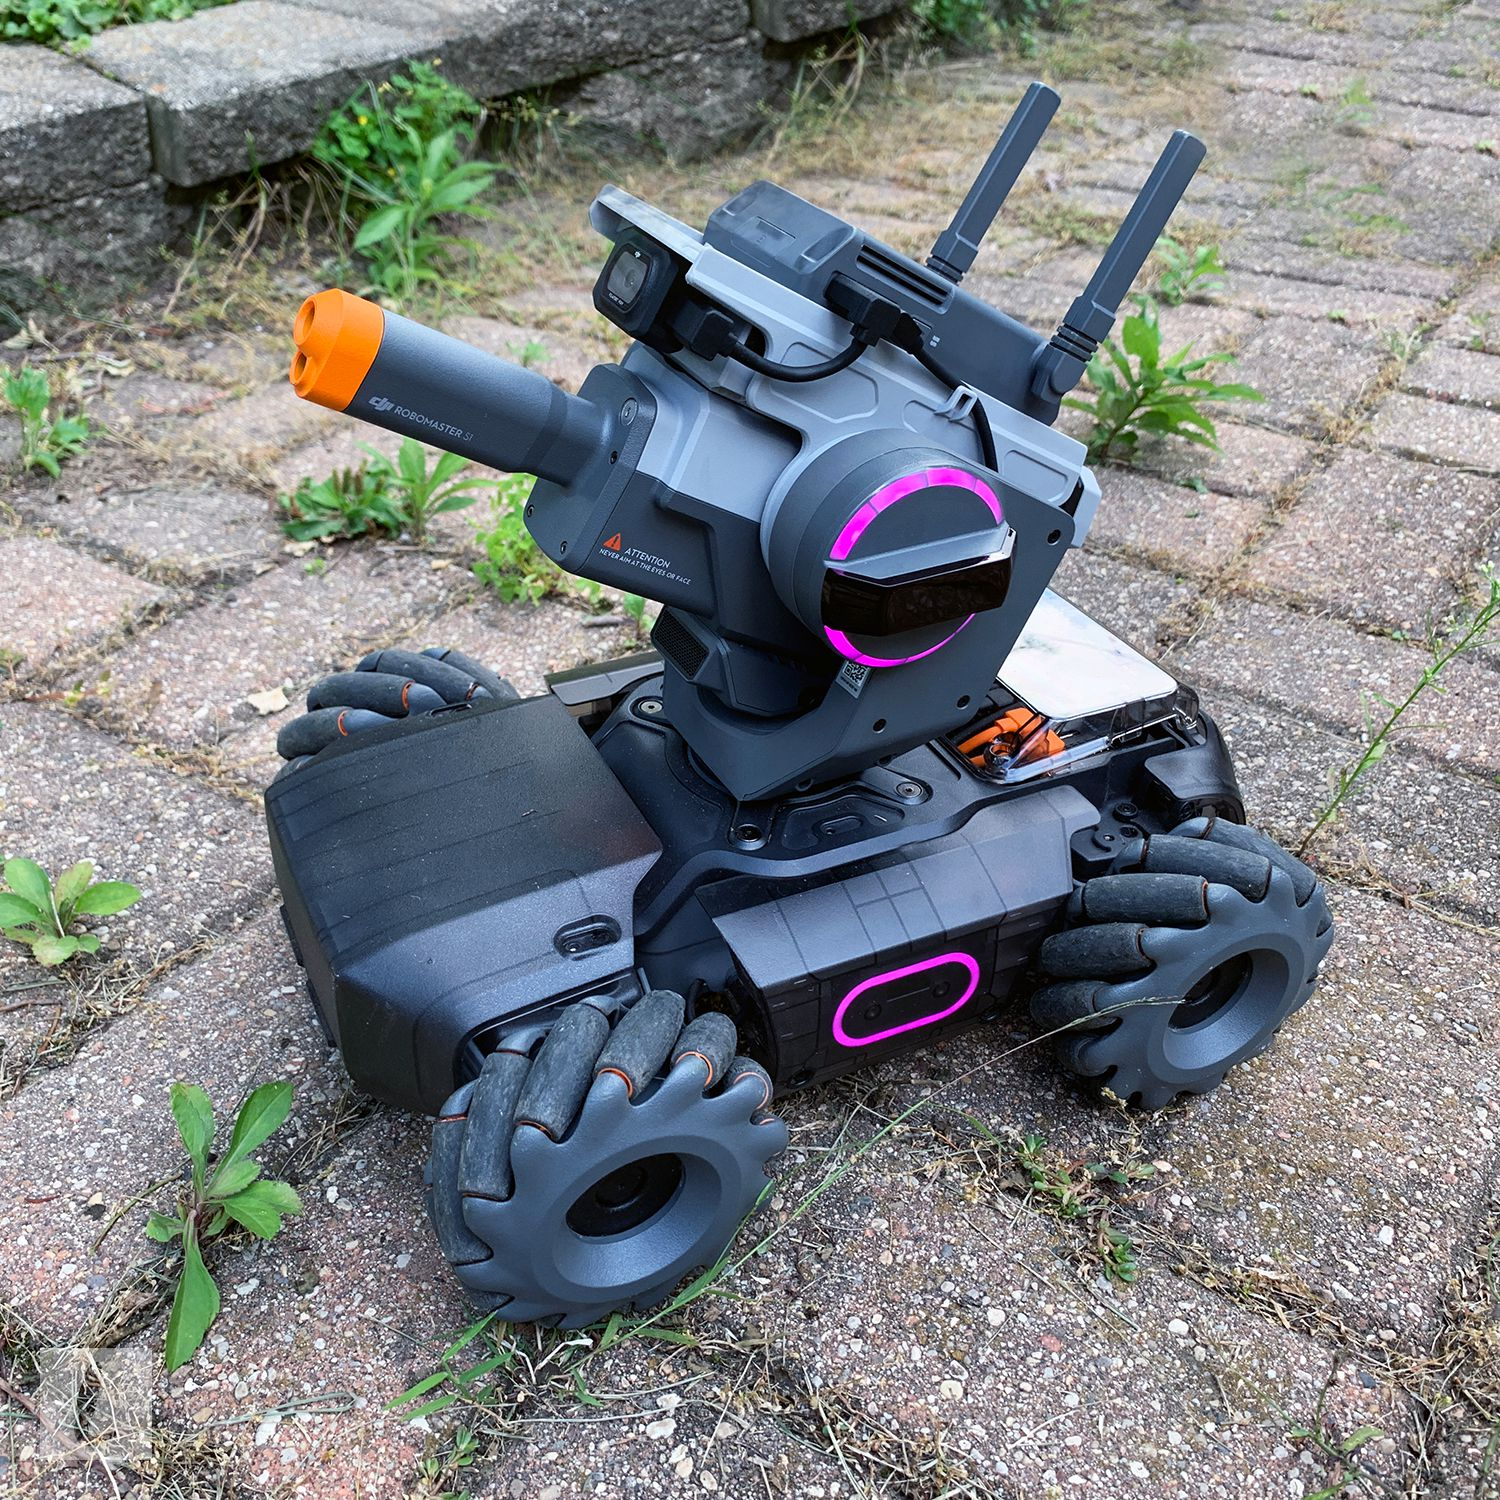 Dji Robomaster S1 Review A Super Fun Tank Drone With Coding And Battling